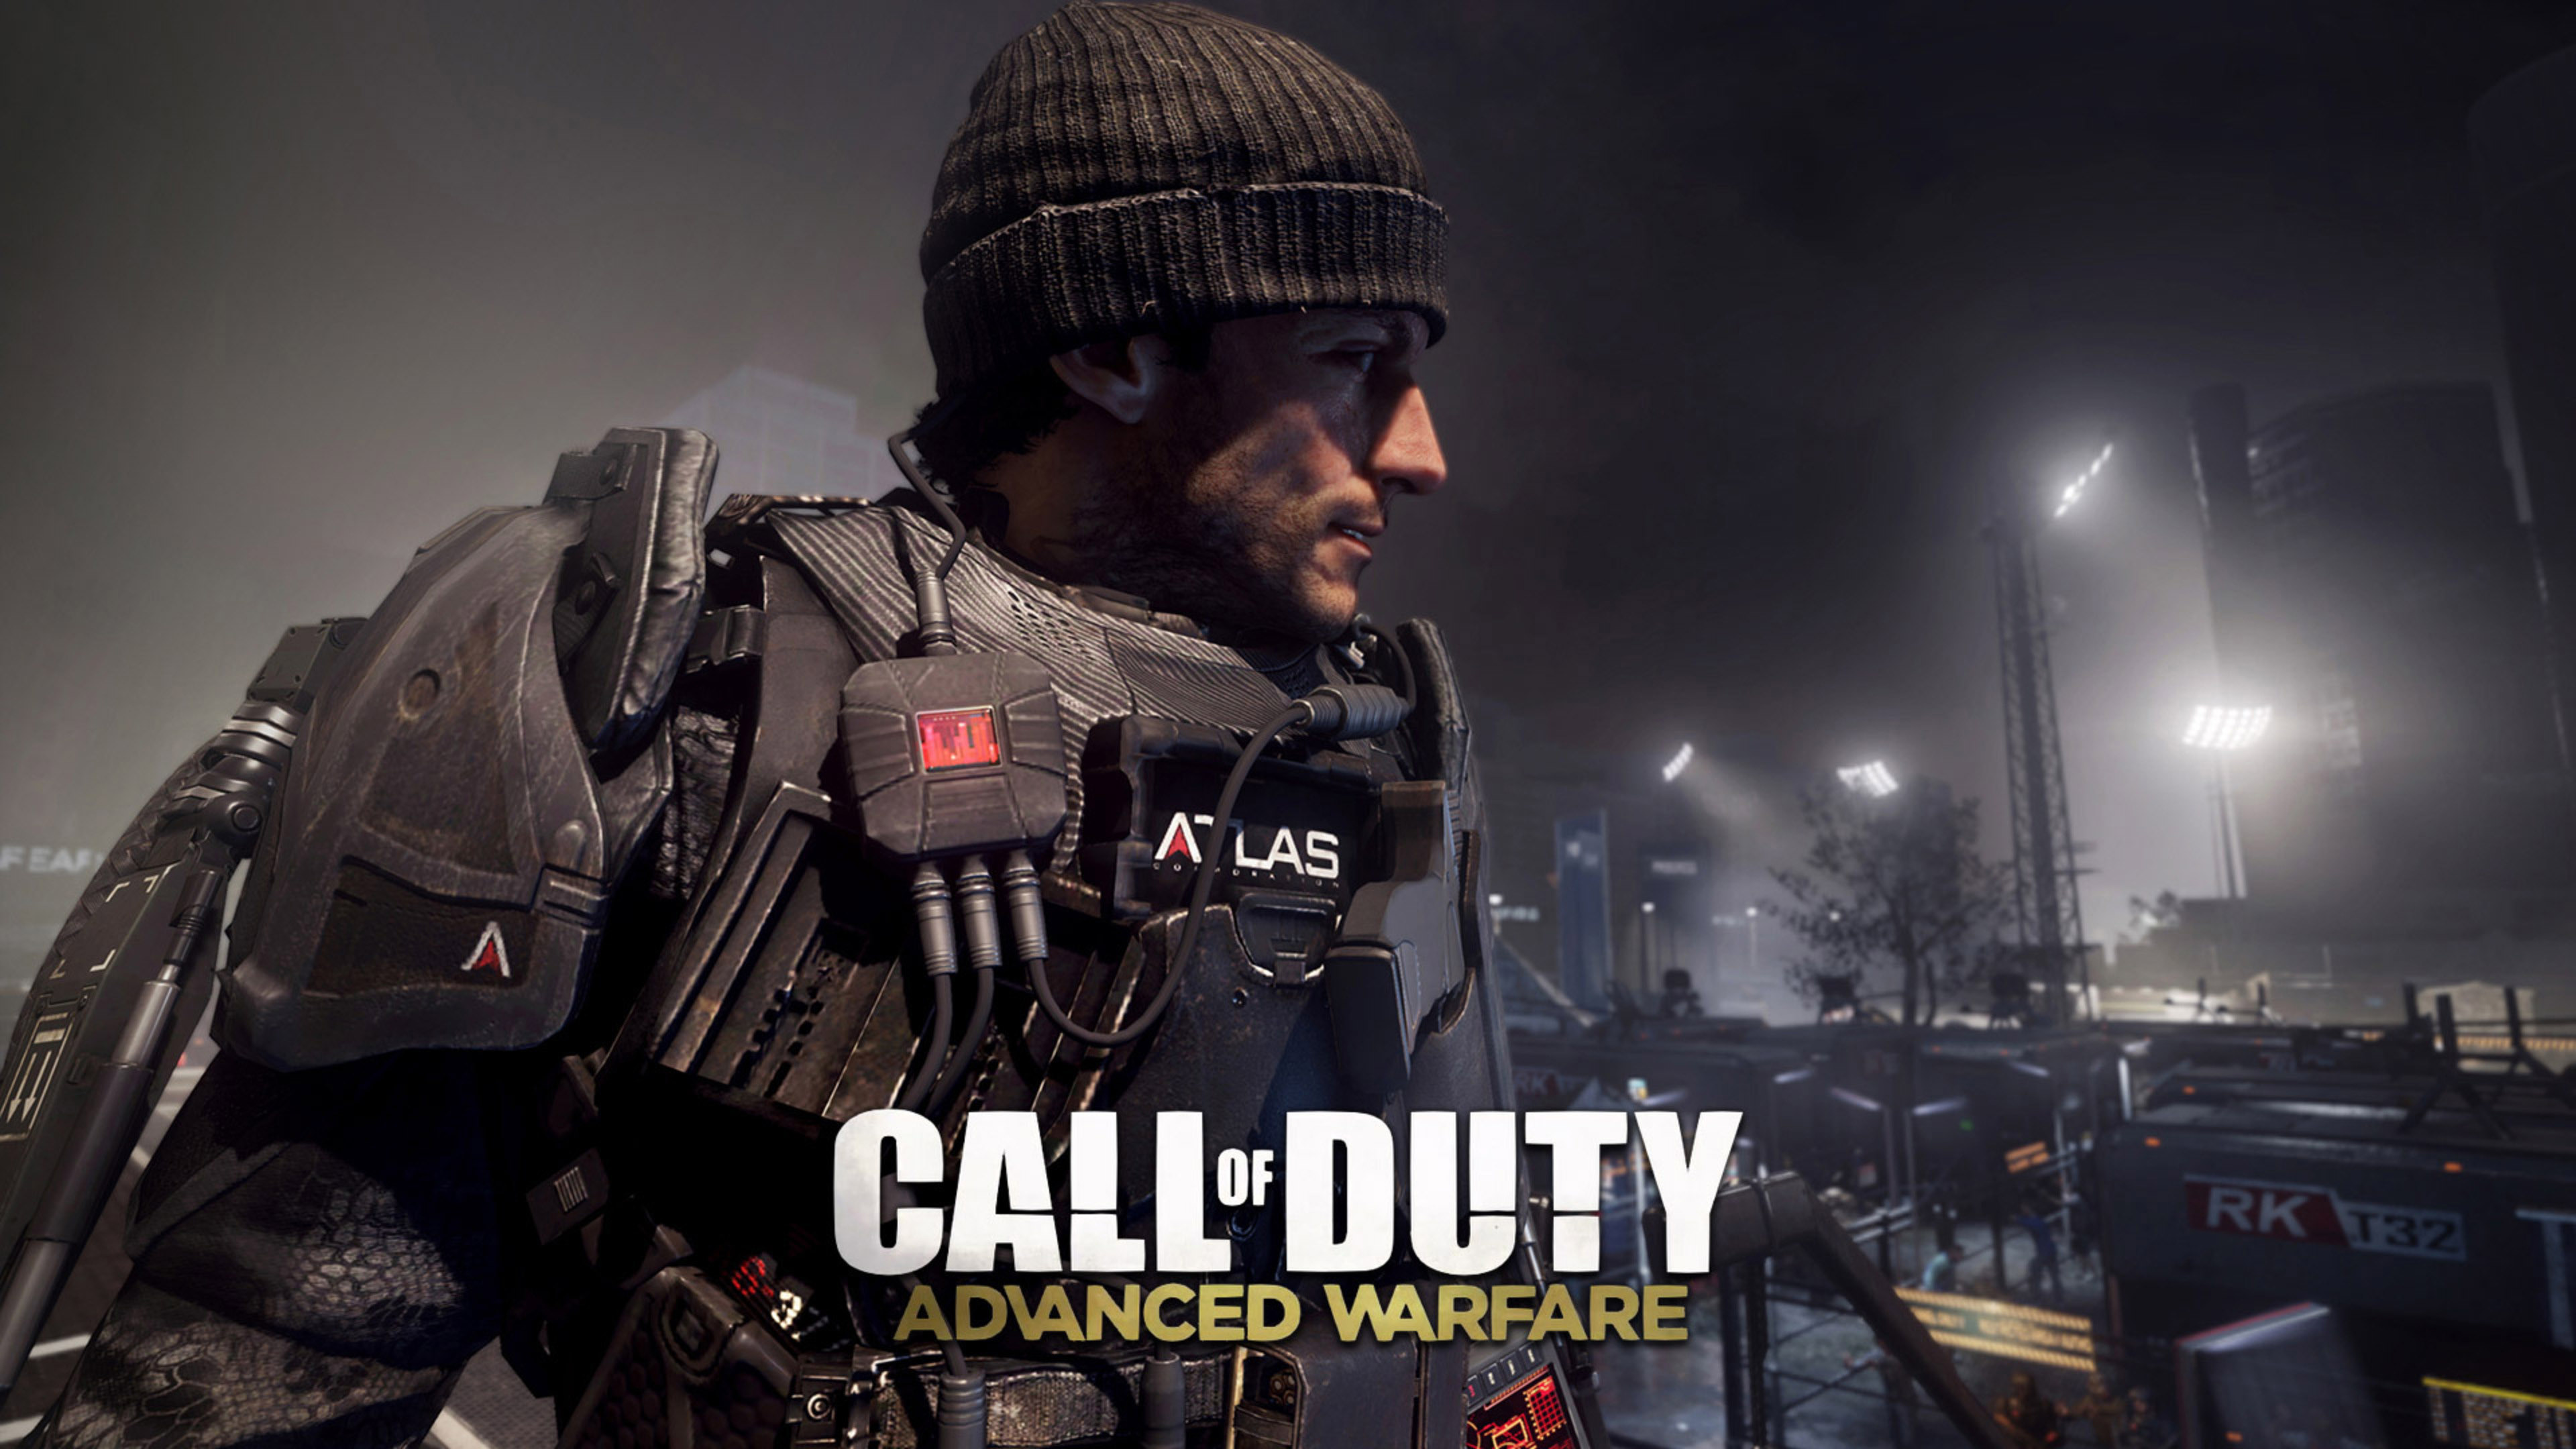 Call-of-Duty-Advanced-Warfare-Gameplay-Wallpaper